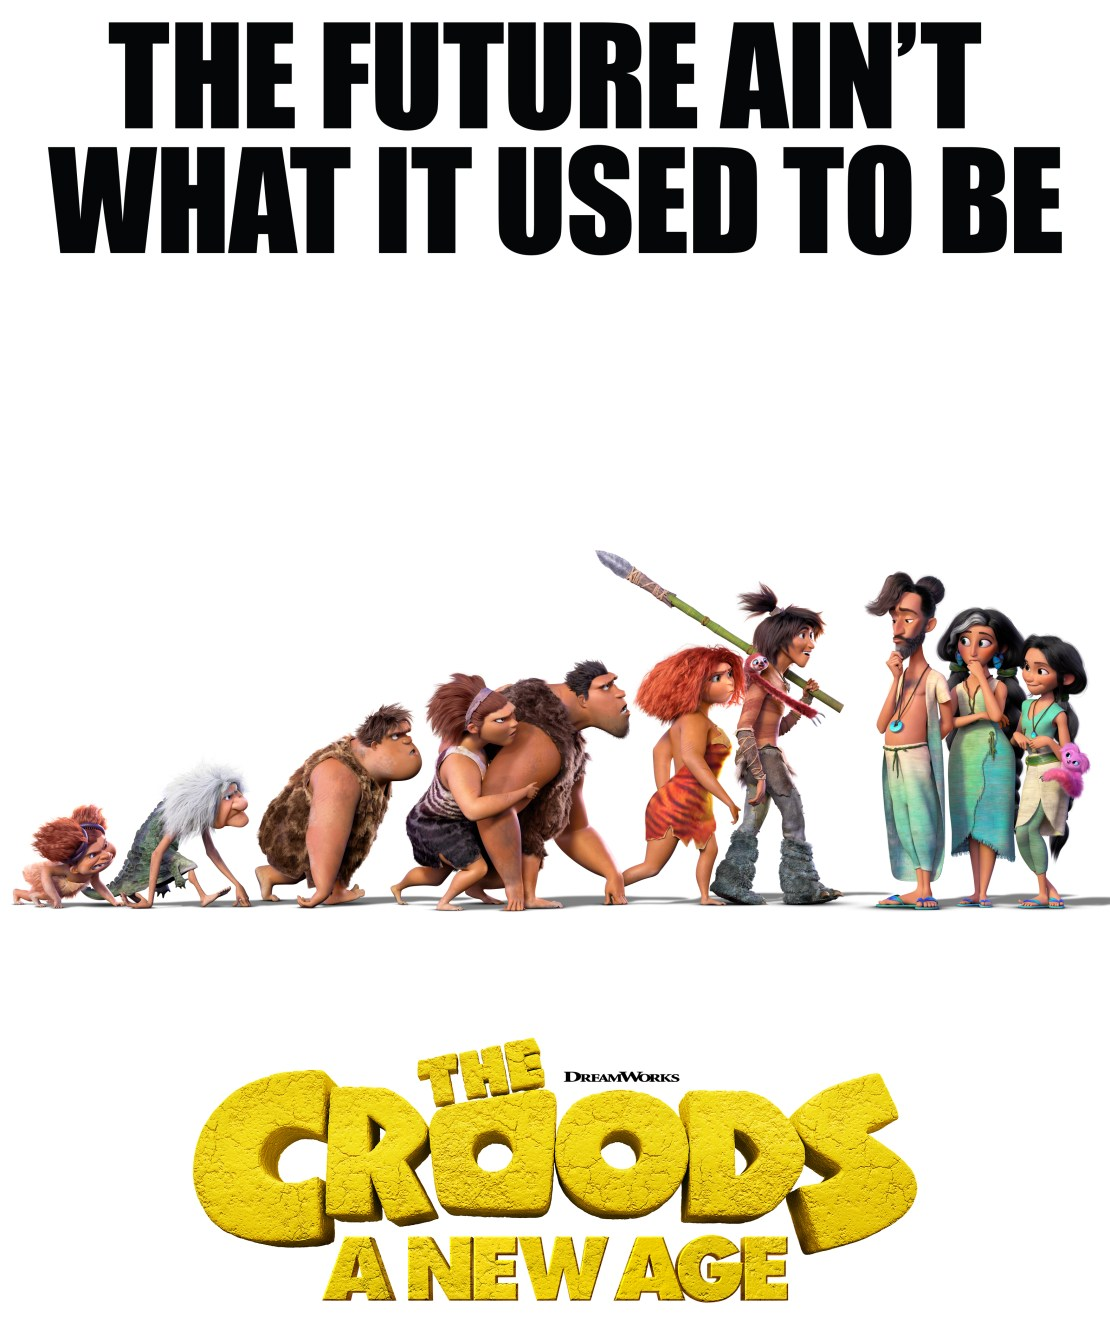 The Croods 2 Movie Poster